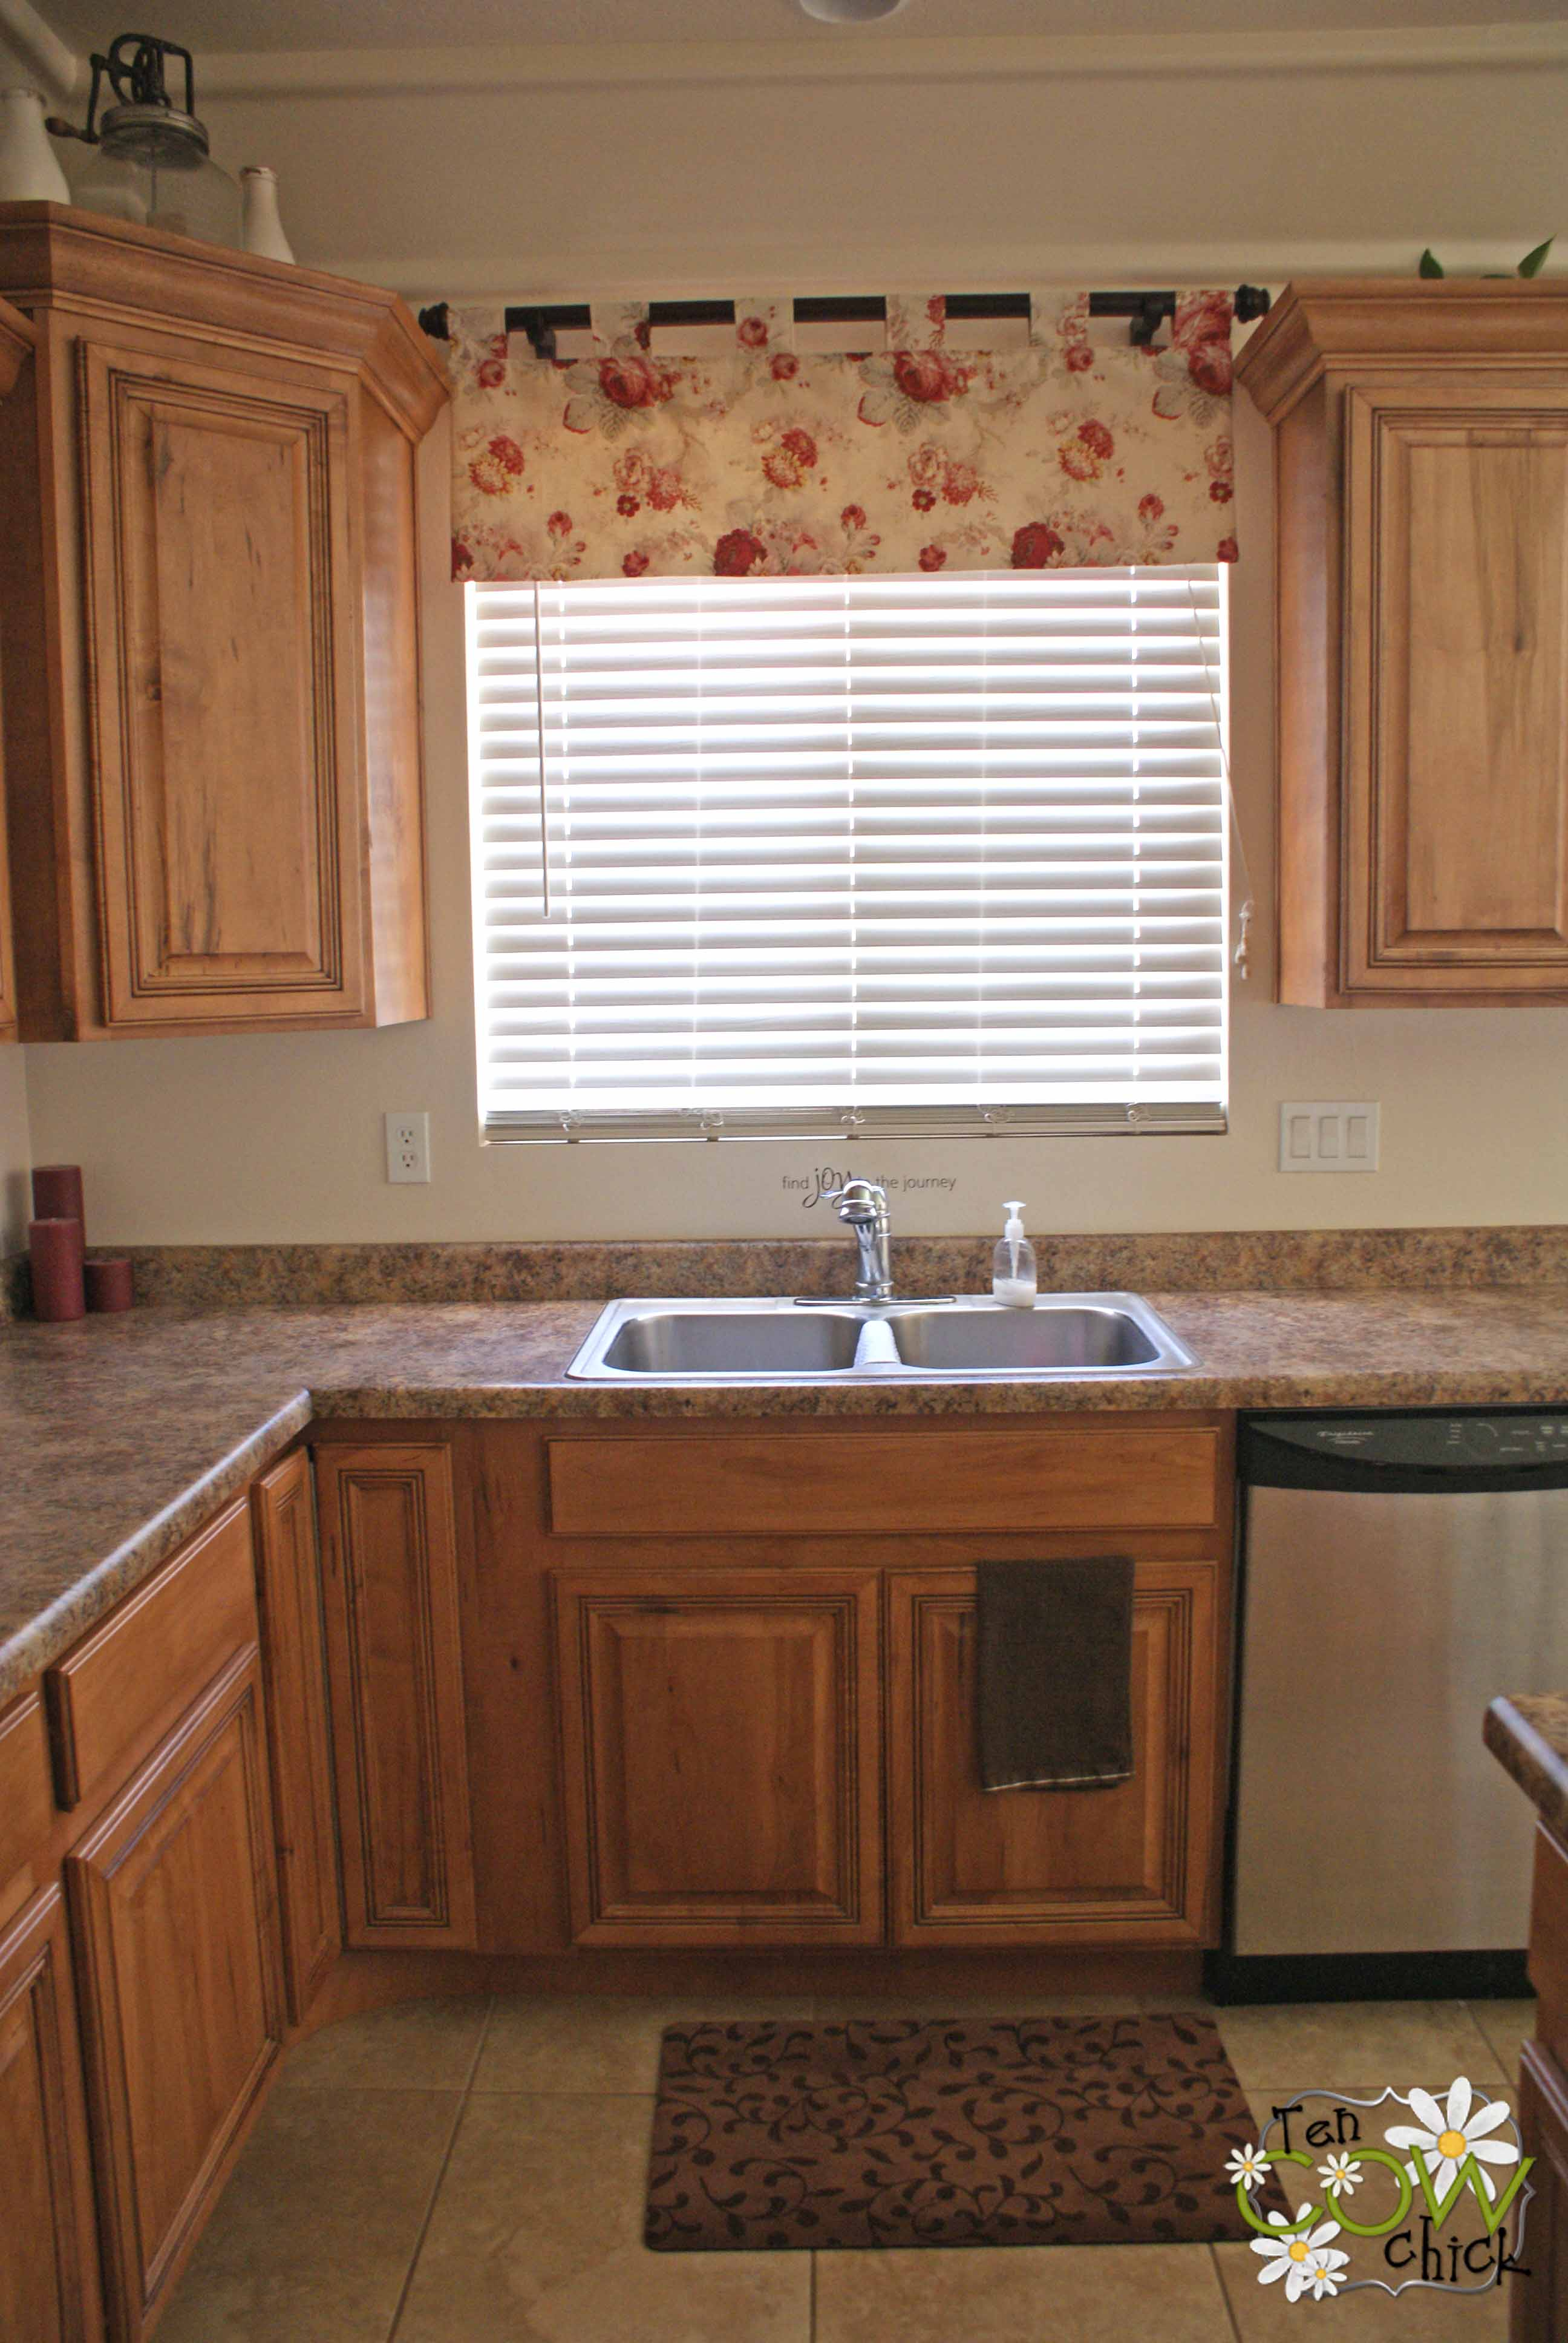 Lovely Window Curtain Ideas also Wooden Cabinet For Decorating Kitchen